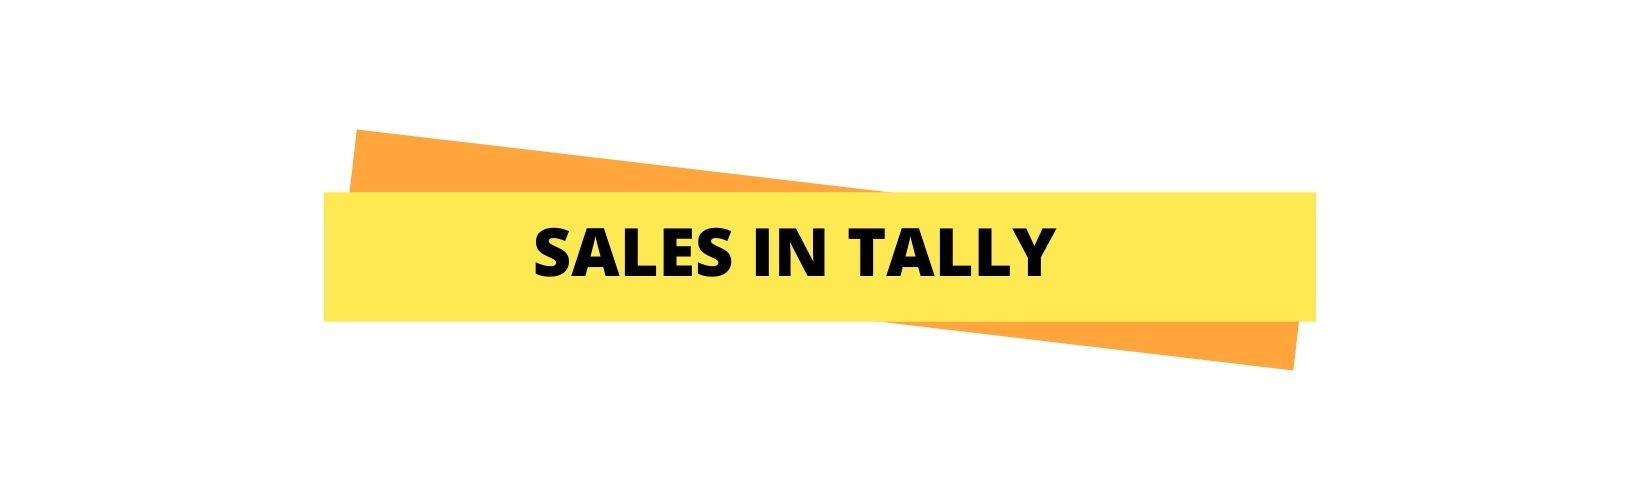 sales in tally